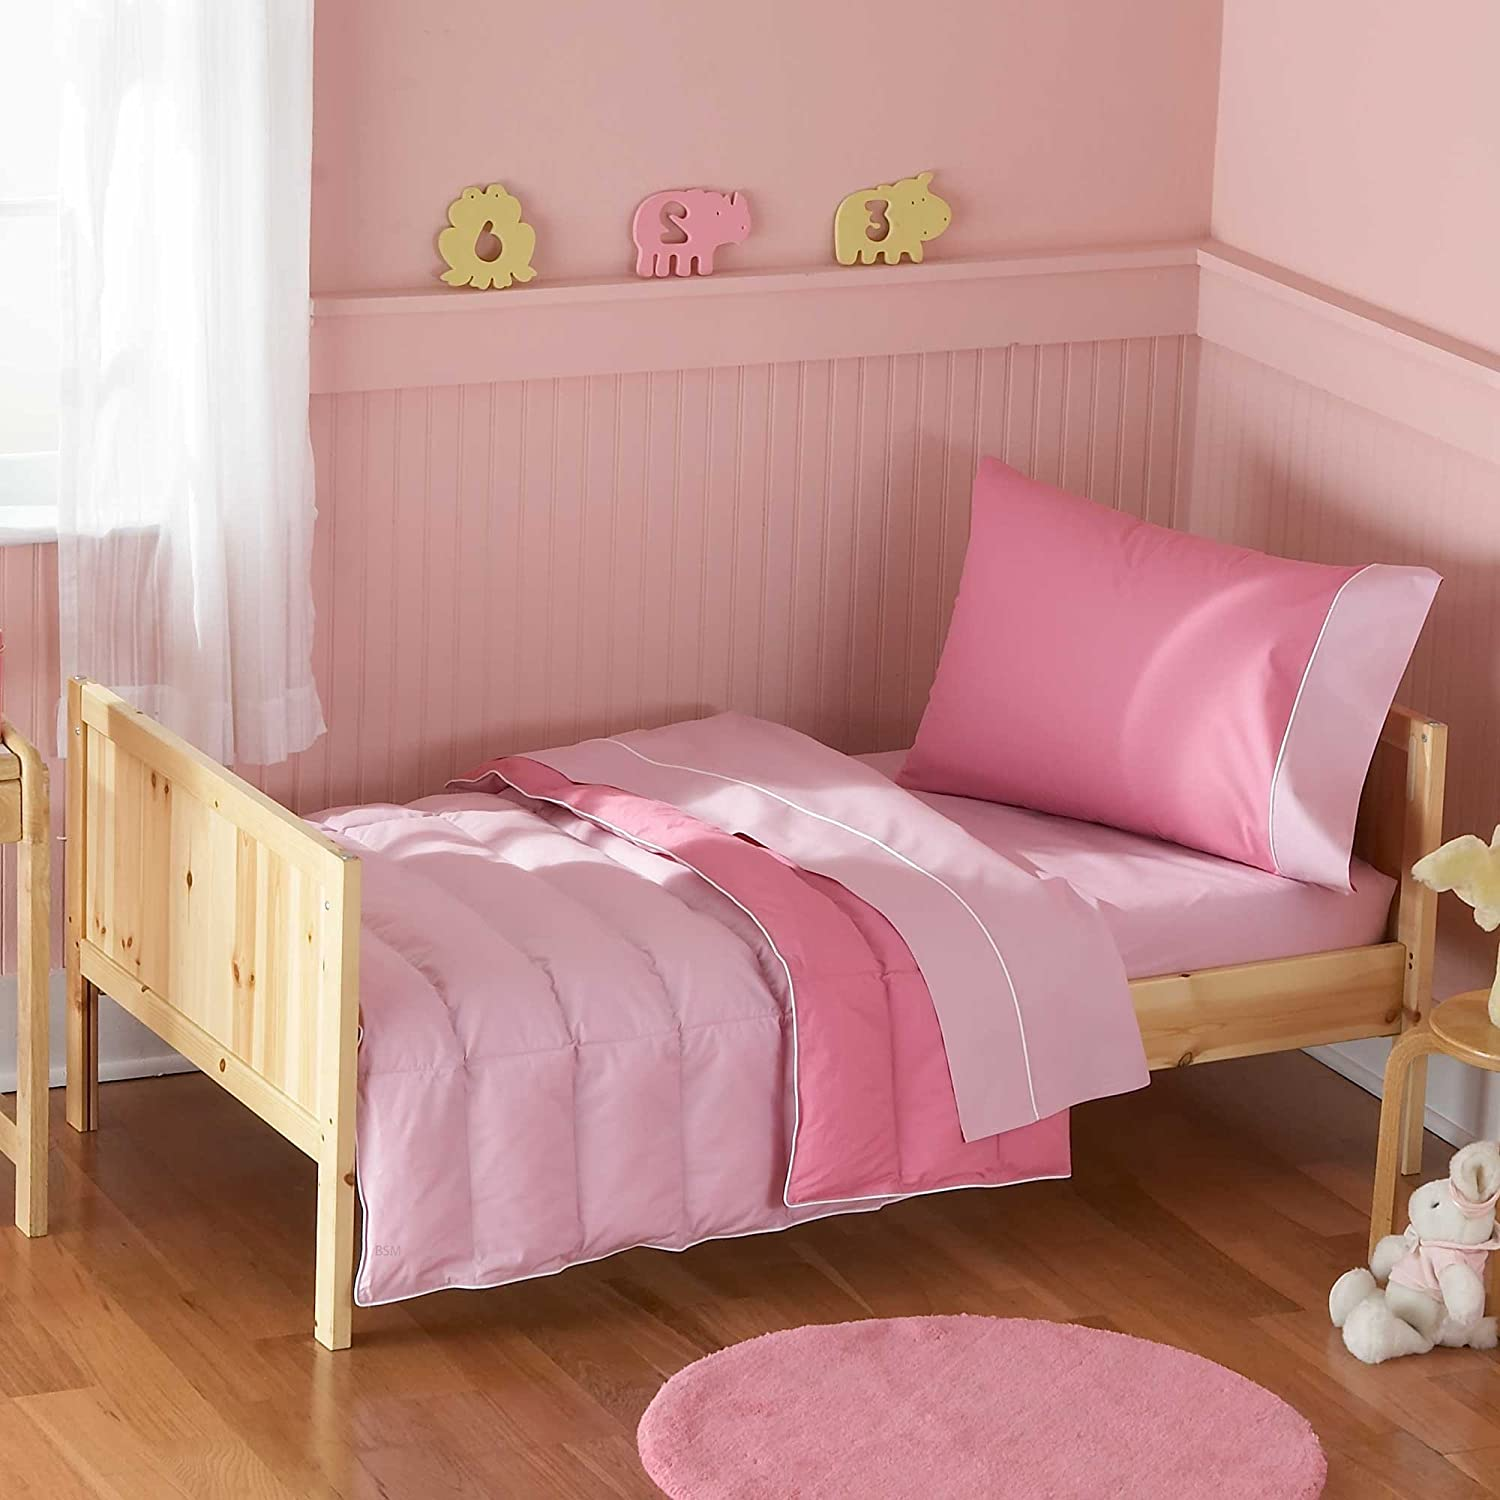 Amazon.com : Pem America Crispy Cotton 4 Pc Toddler Bedding Set   Pink : Toddler  Bedding For Girls : Baby